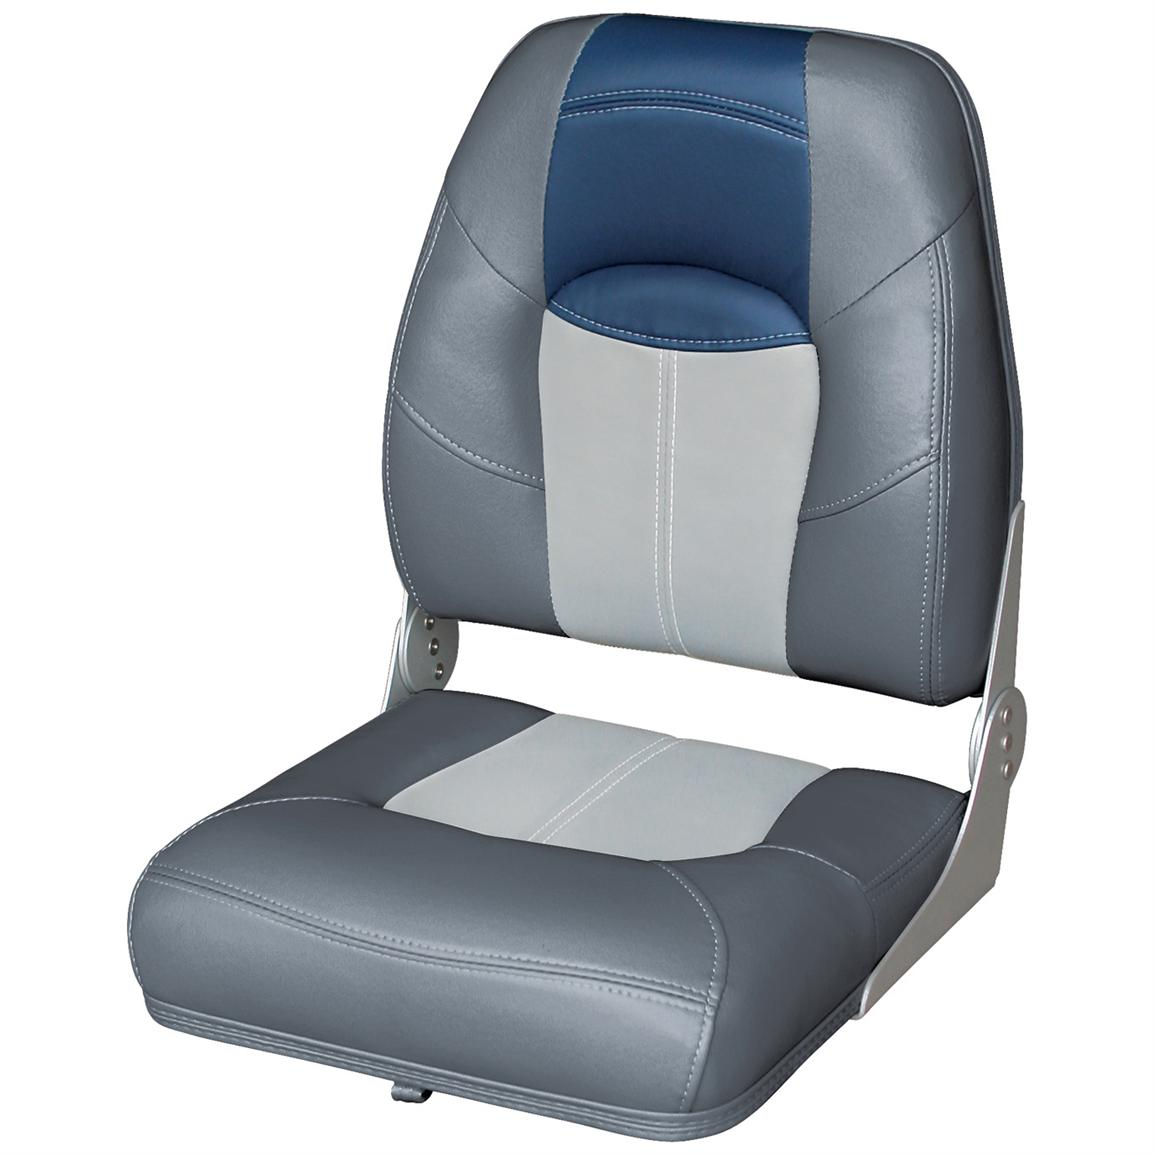 Wise® Blast-Off™ Series High Back Folding Boat Seat, Charcoal / Grey / Blue